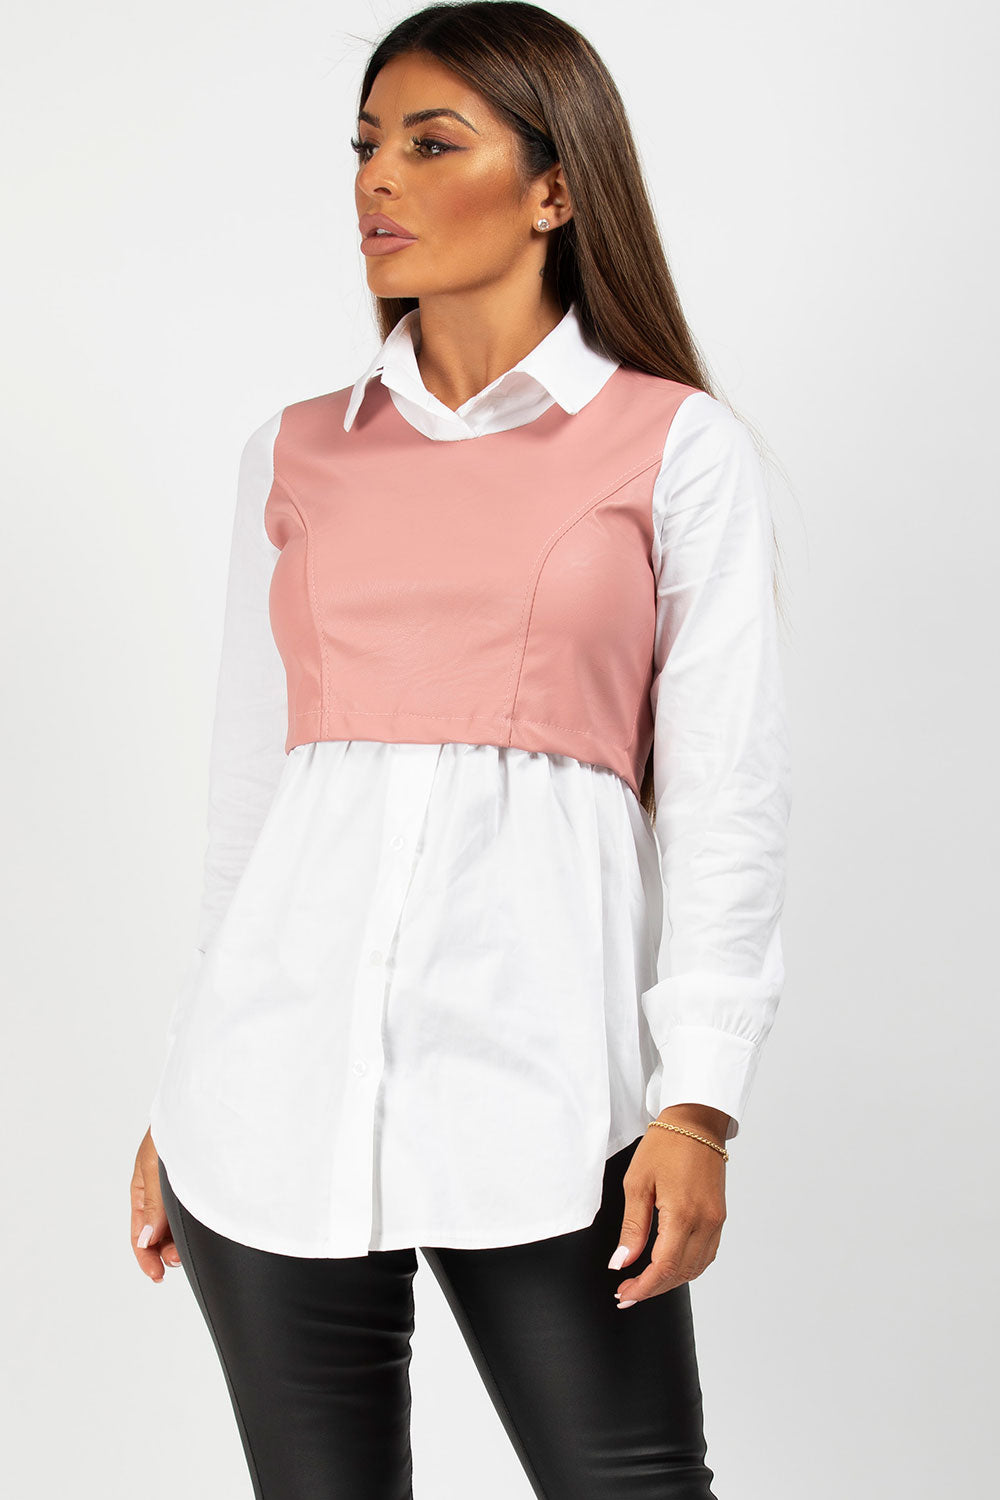 Pu leather bust panel shirt